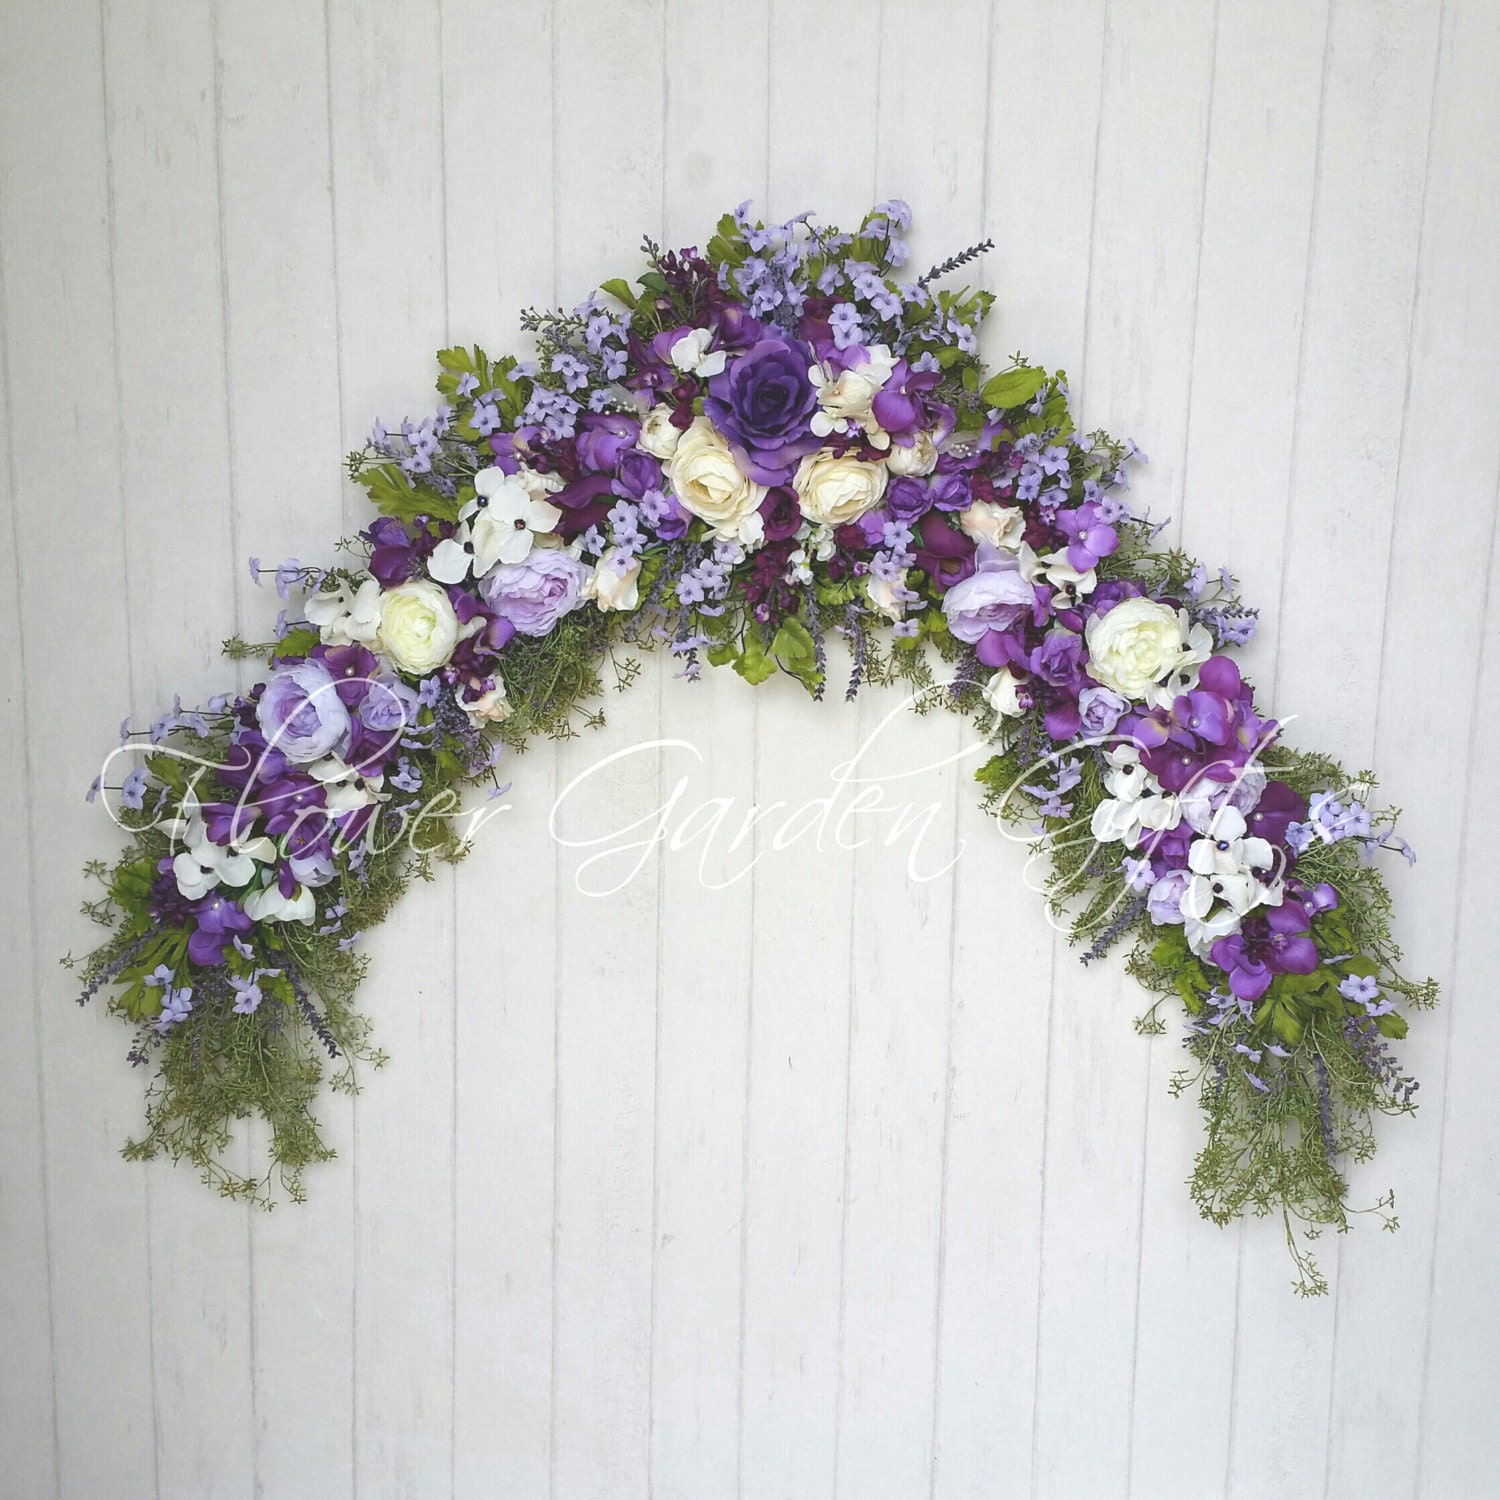 Names Of Purple Flowers For Wedding: PURPLE FLORAL SWAG Wedding Arch Swag Wedding By